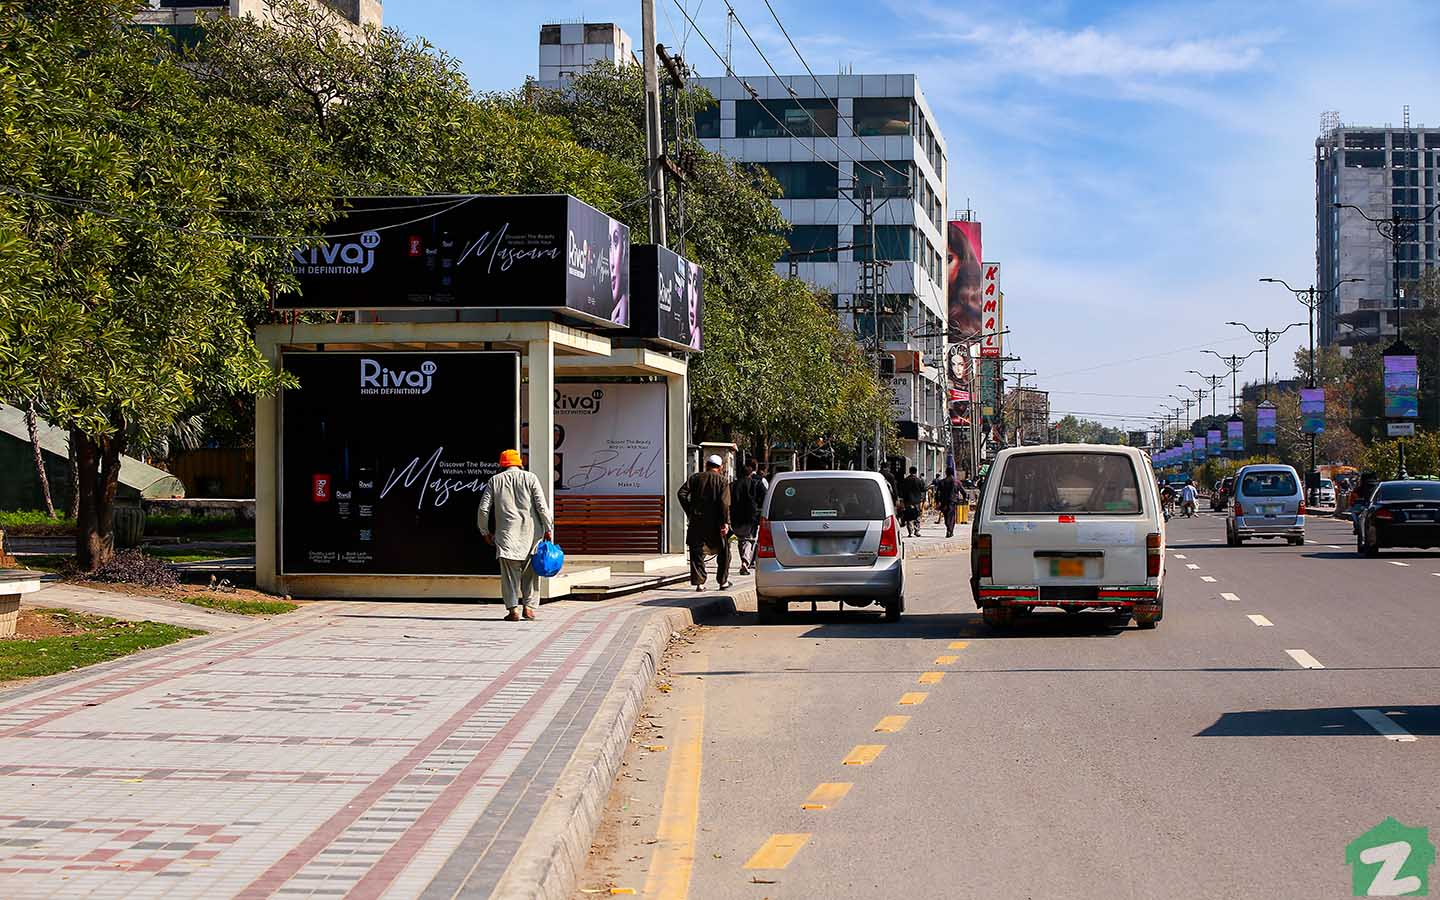 Several bus stops can be found in Gulberg Lahore